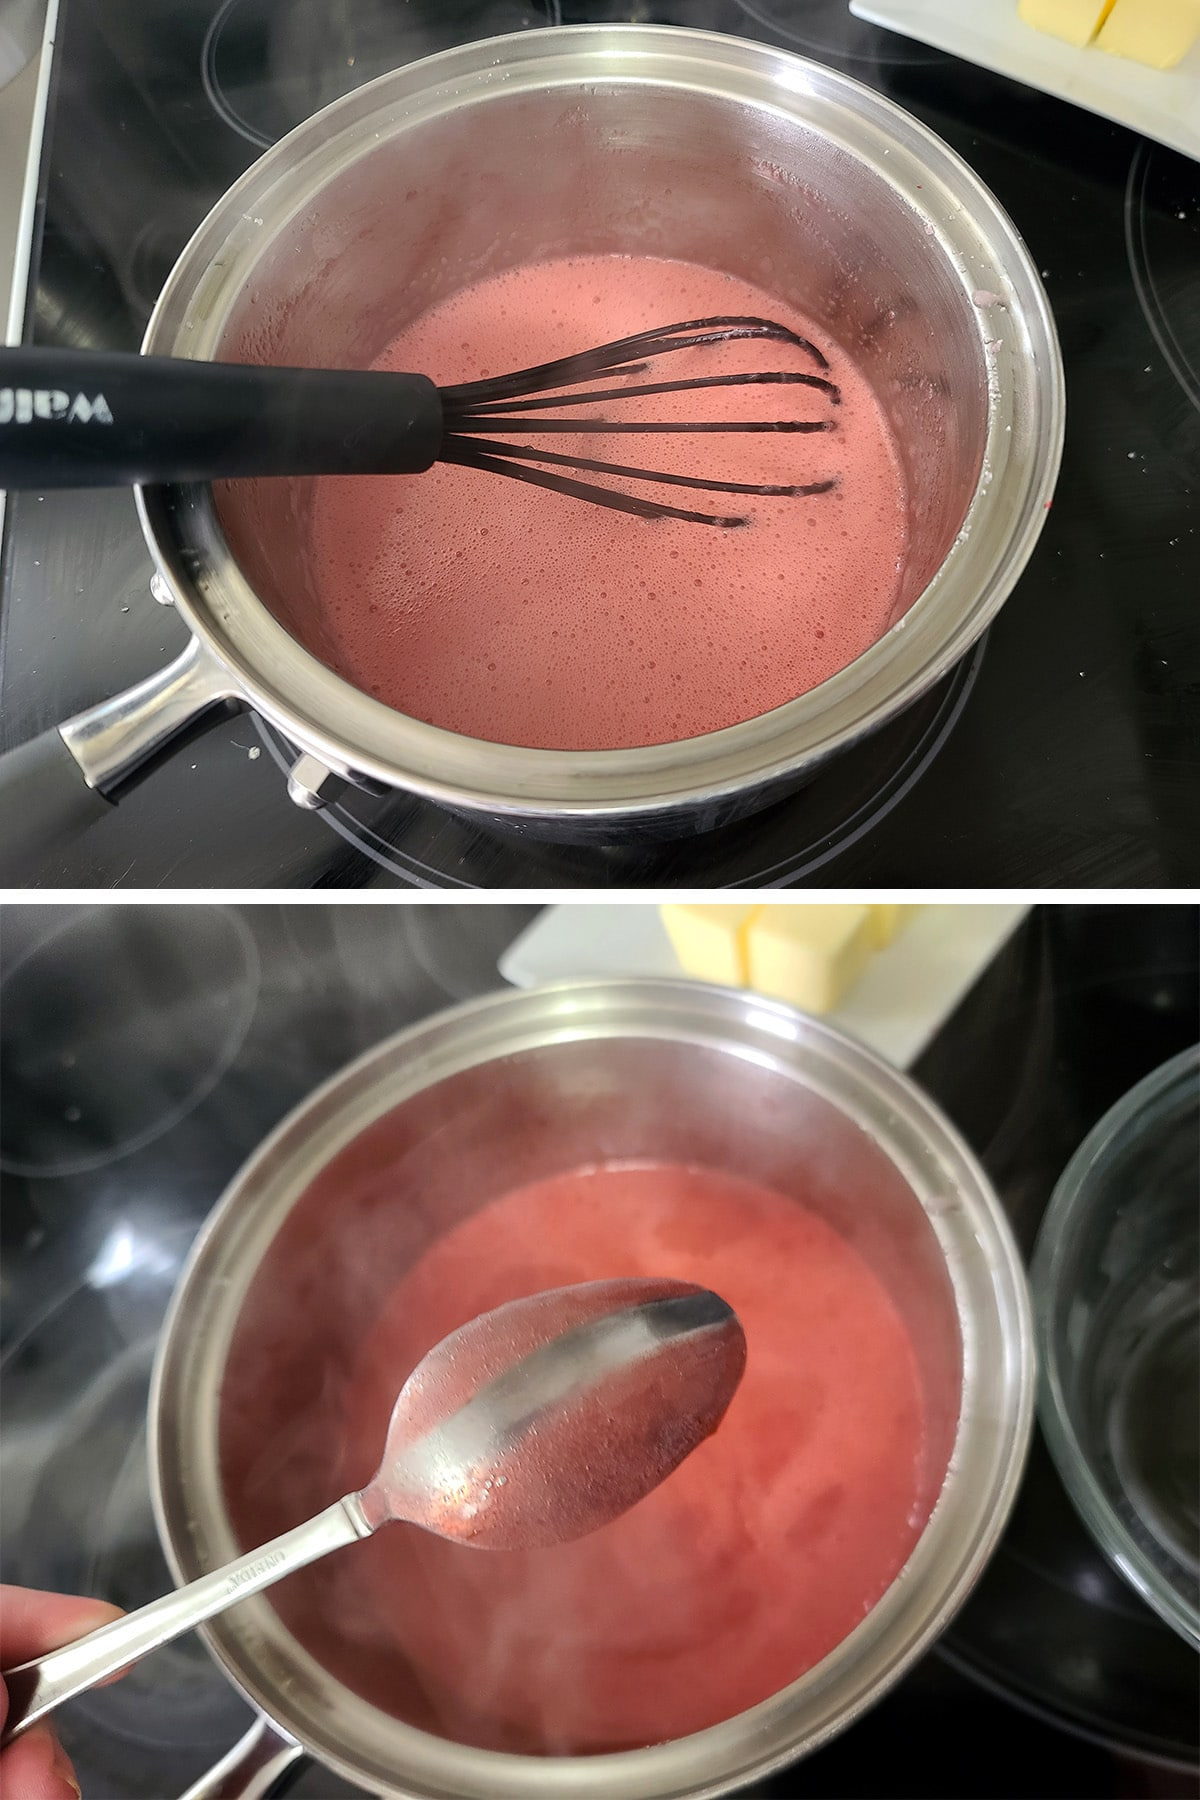 A pot of cranberry curd being whisked to cook, and a curd coated back of a spoon with a streak in it.